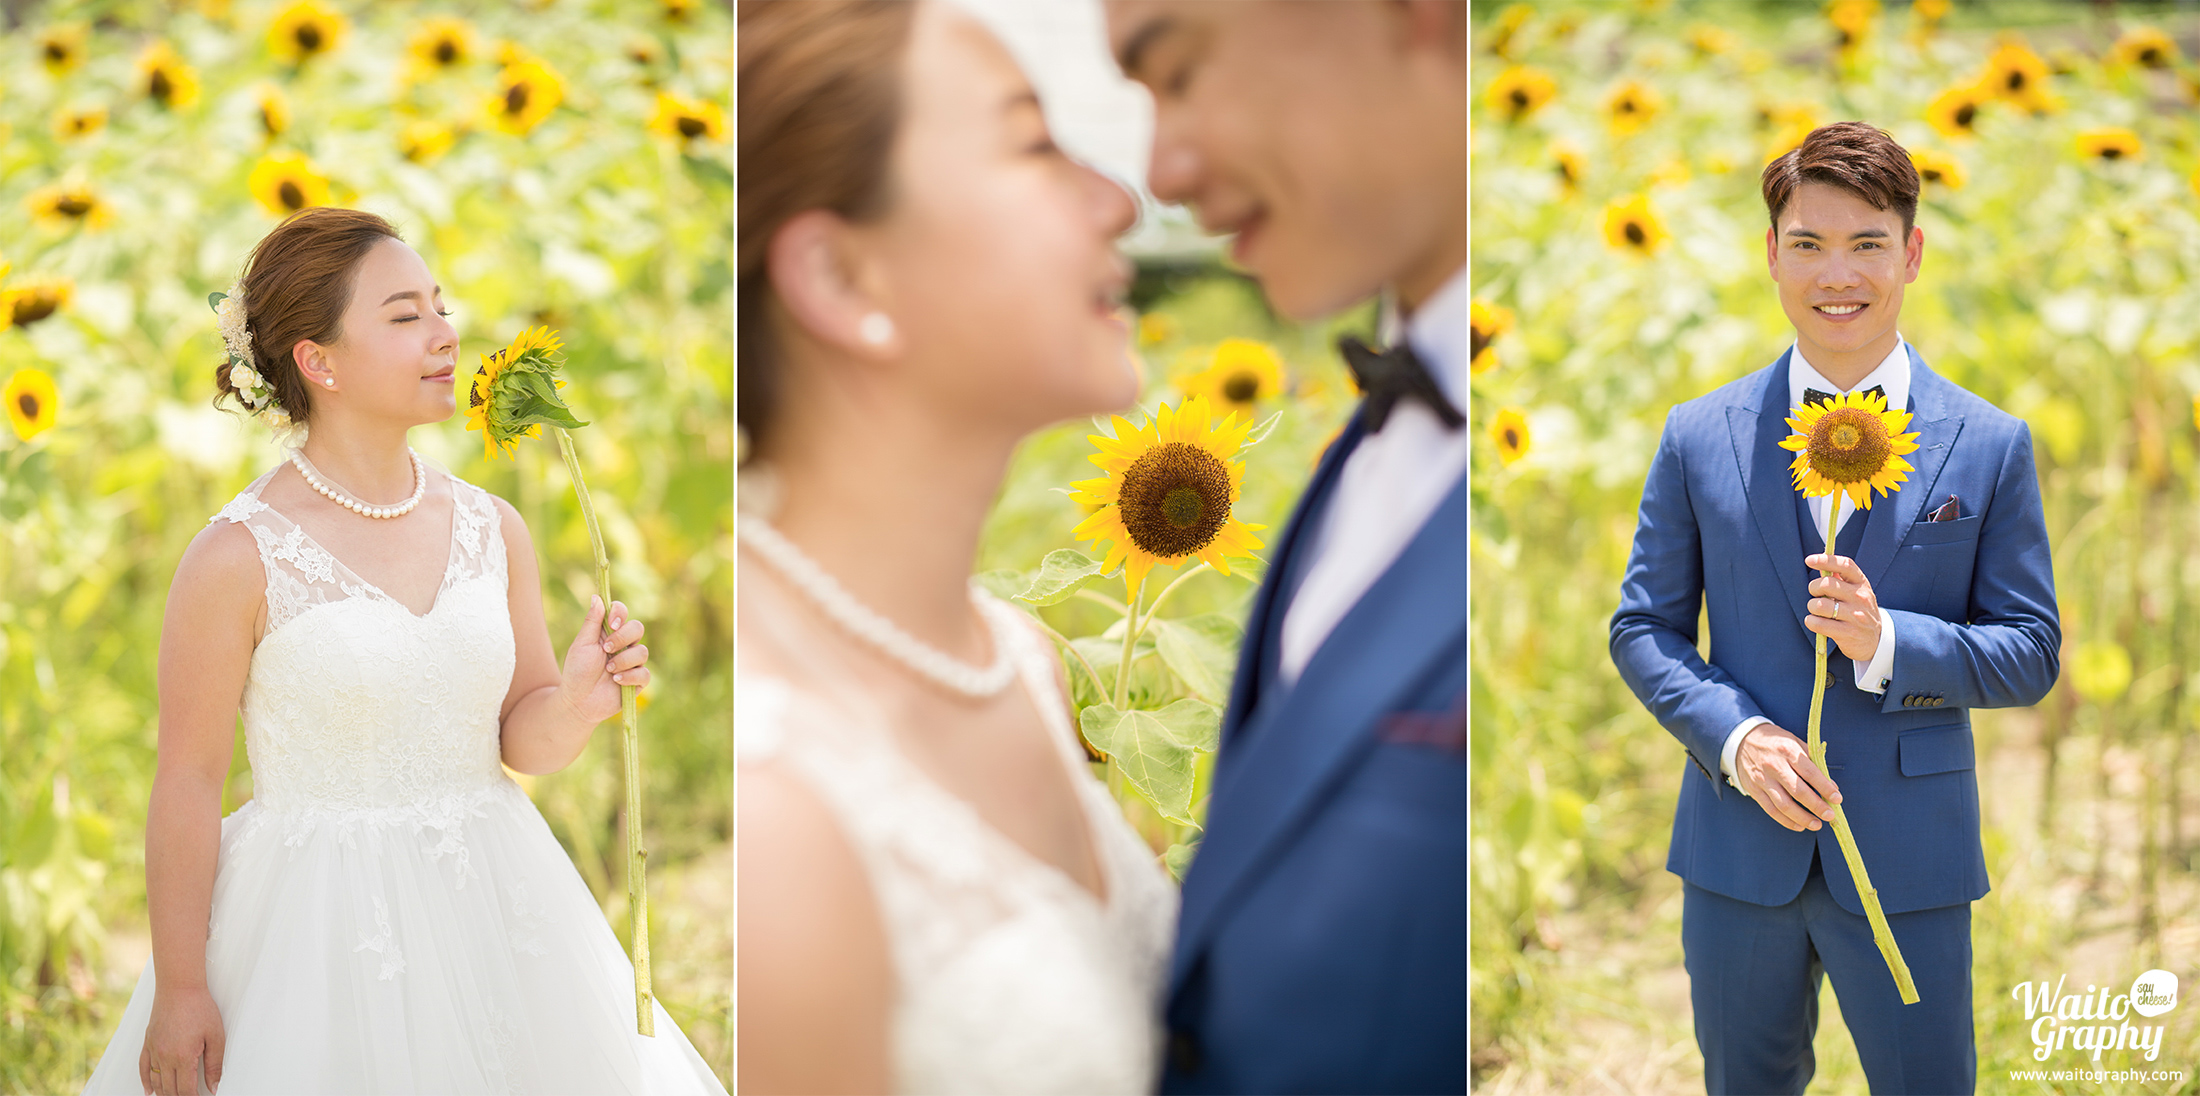 HK best engagement wedding photographer captured sweet and unforgettable moment for HK couple in a sunflower field